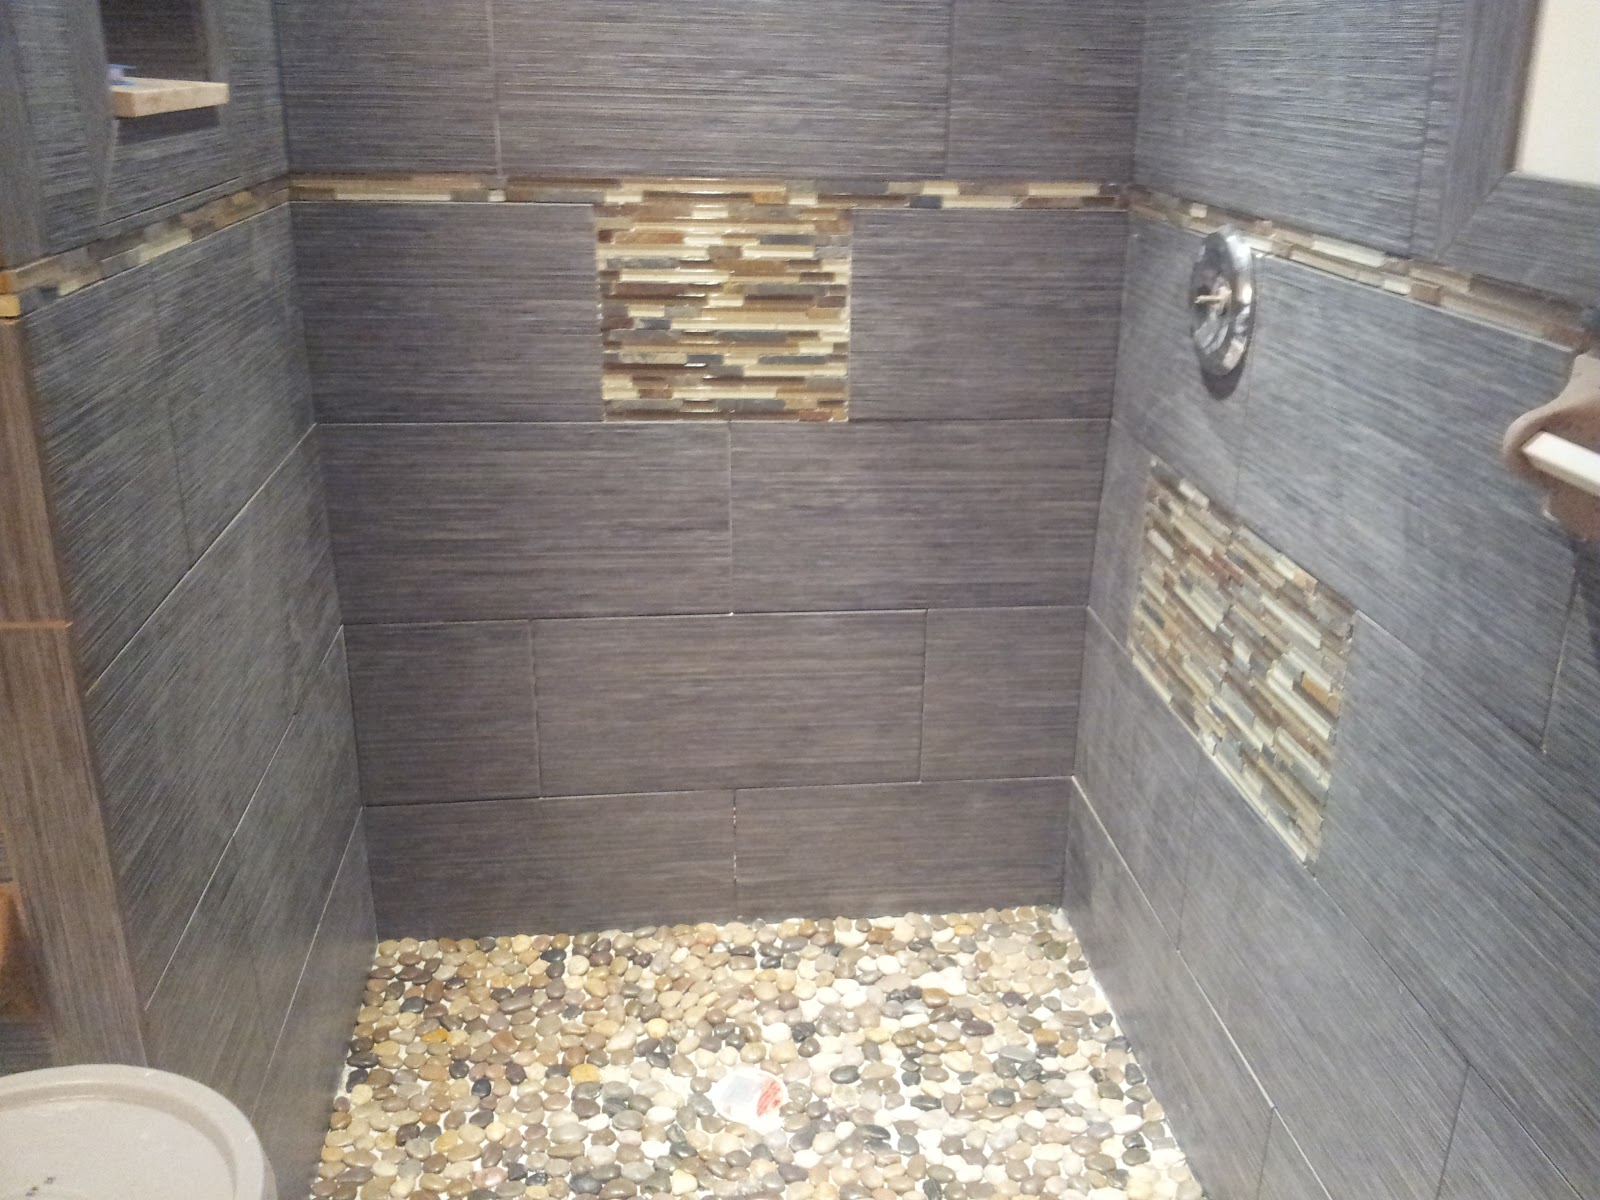 Glass Tile River Stone And Porcelain Tile Shower Installed In Margate